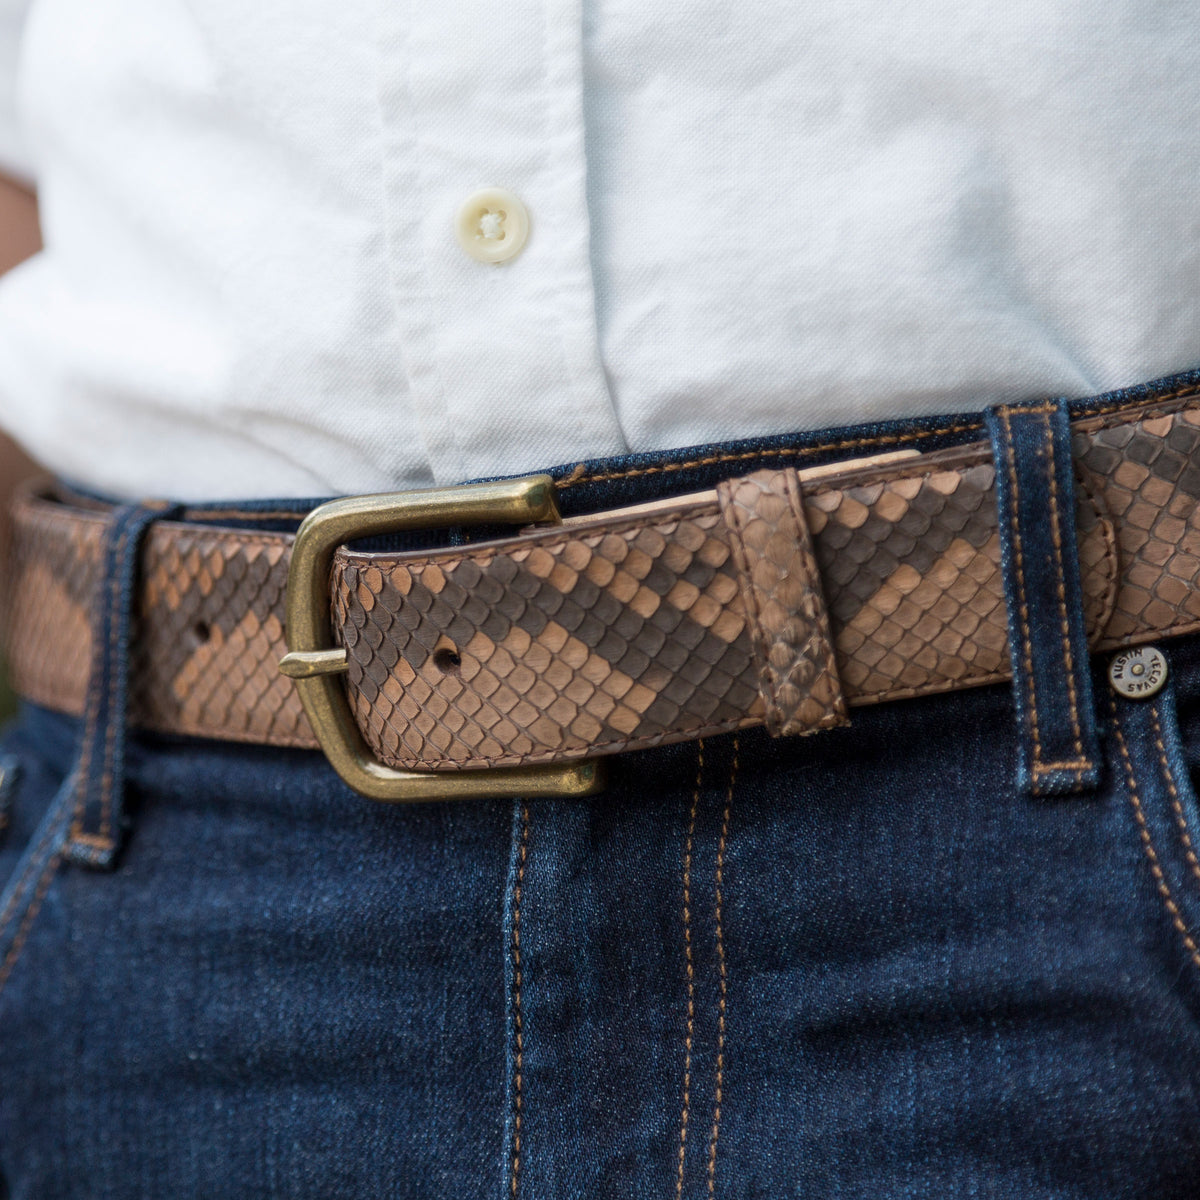 Military belt tips//brass plated or Nickle 1st quality goods available in 1 inch